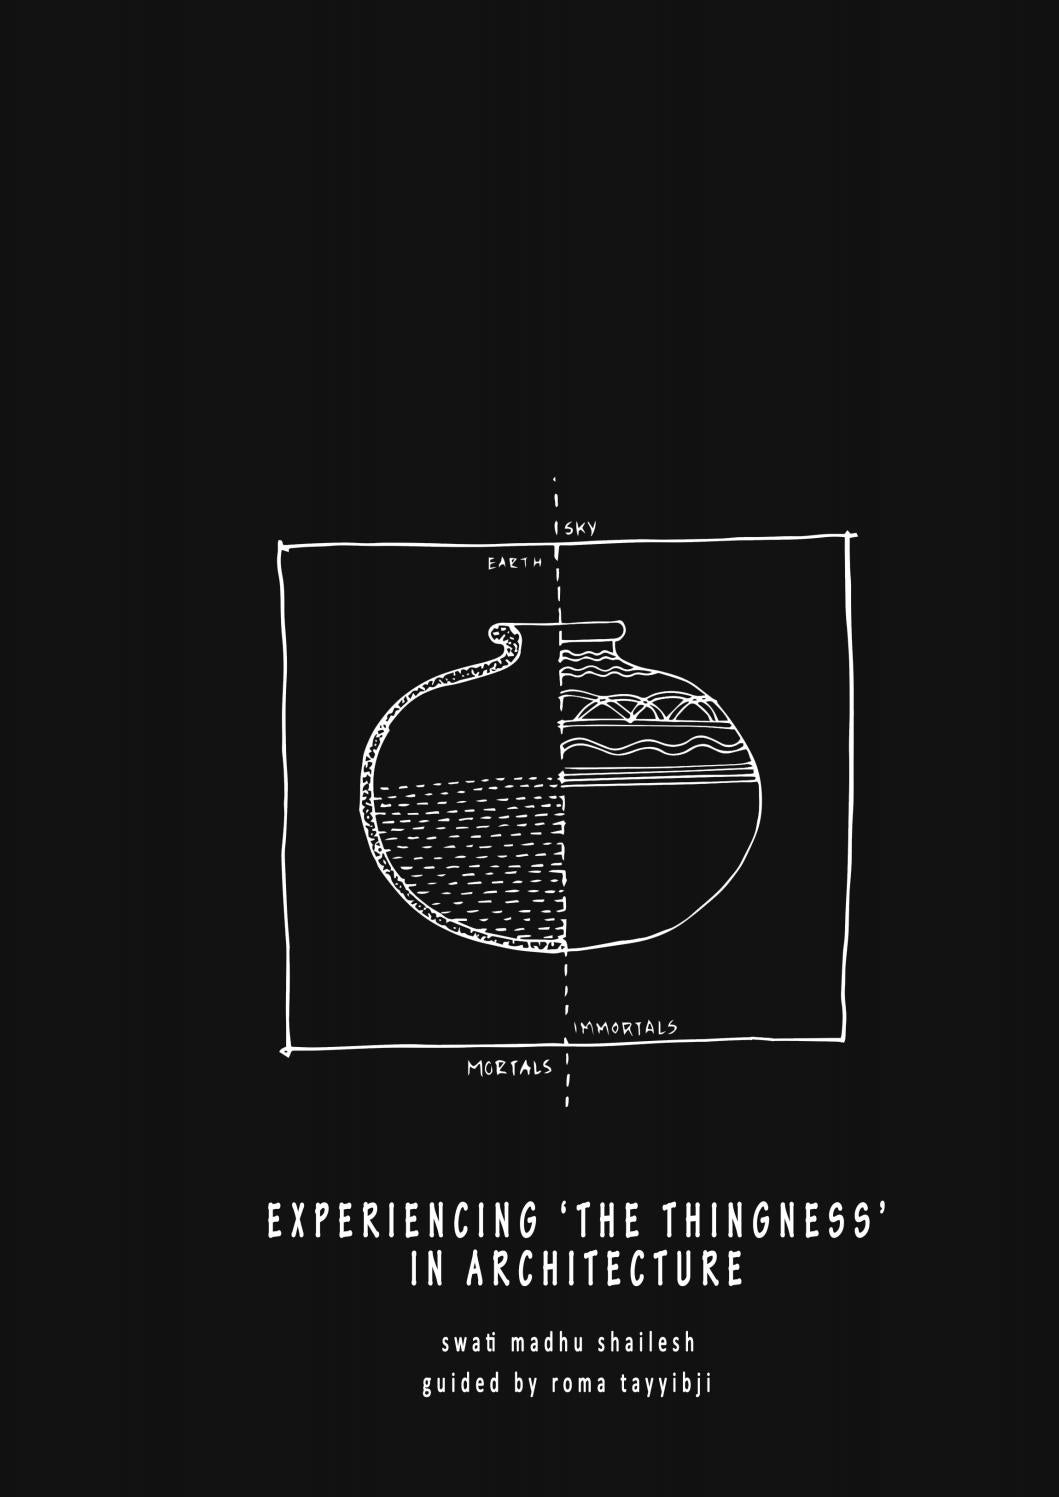 Architectural Thesis: Experiencing